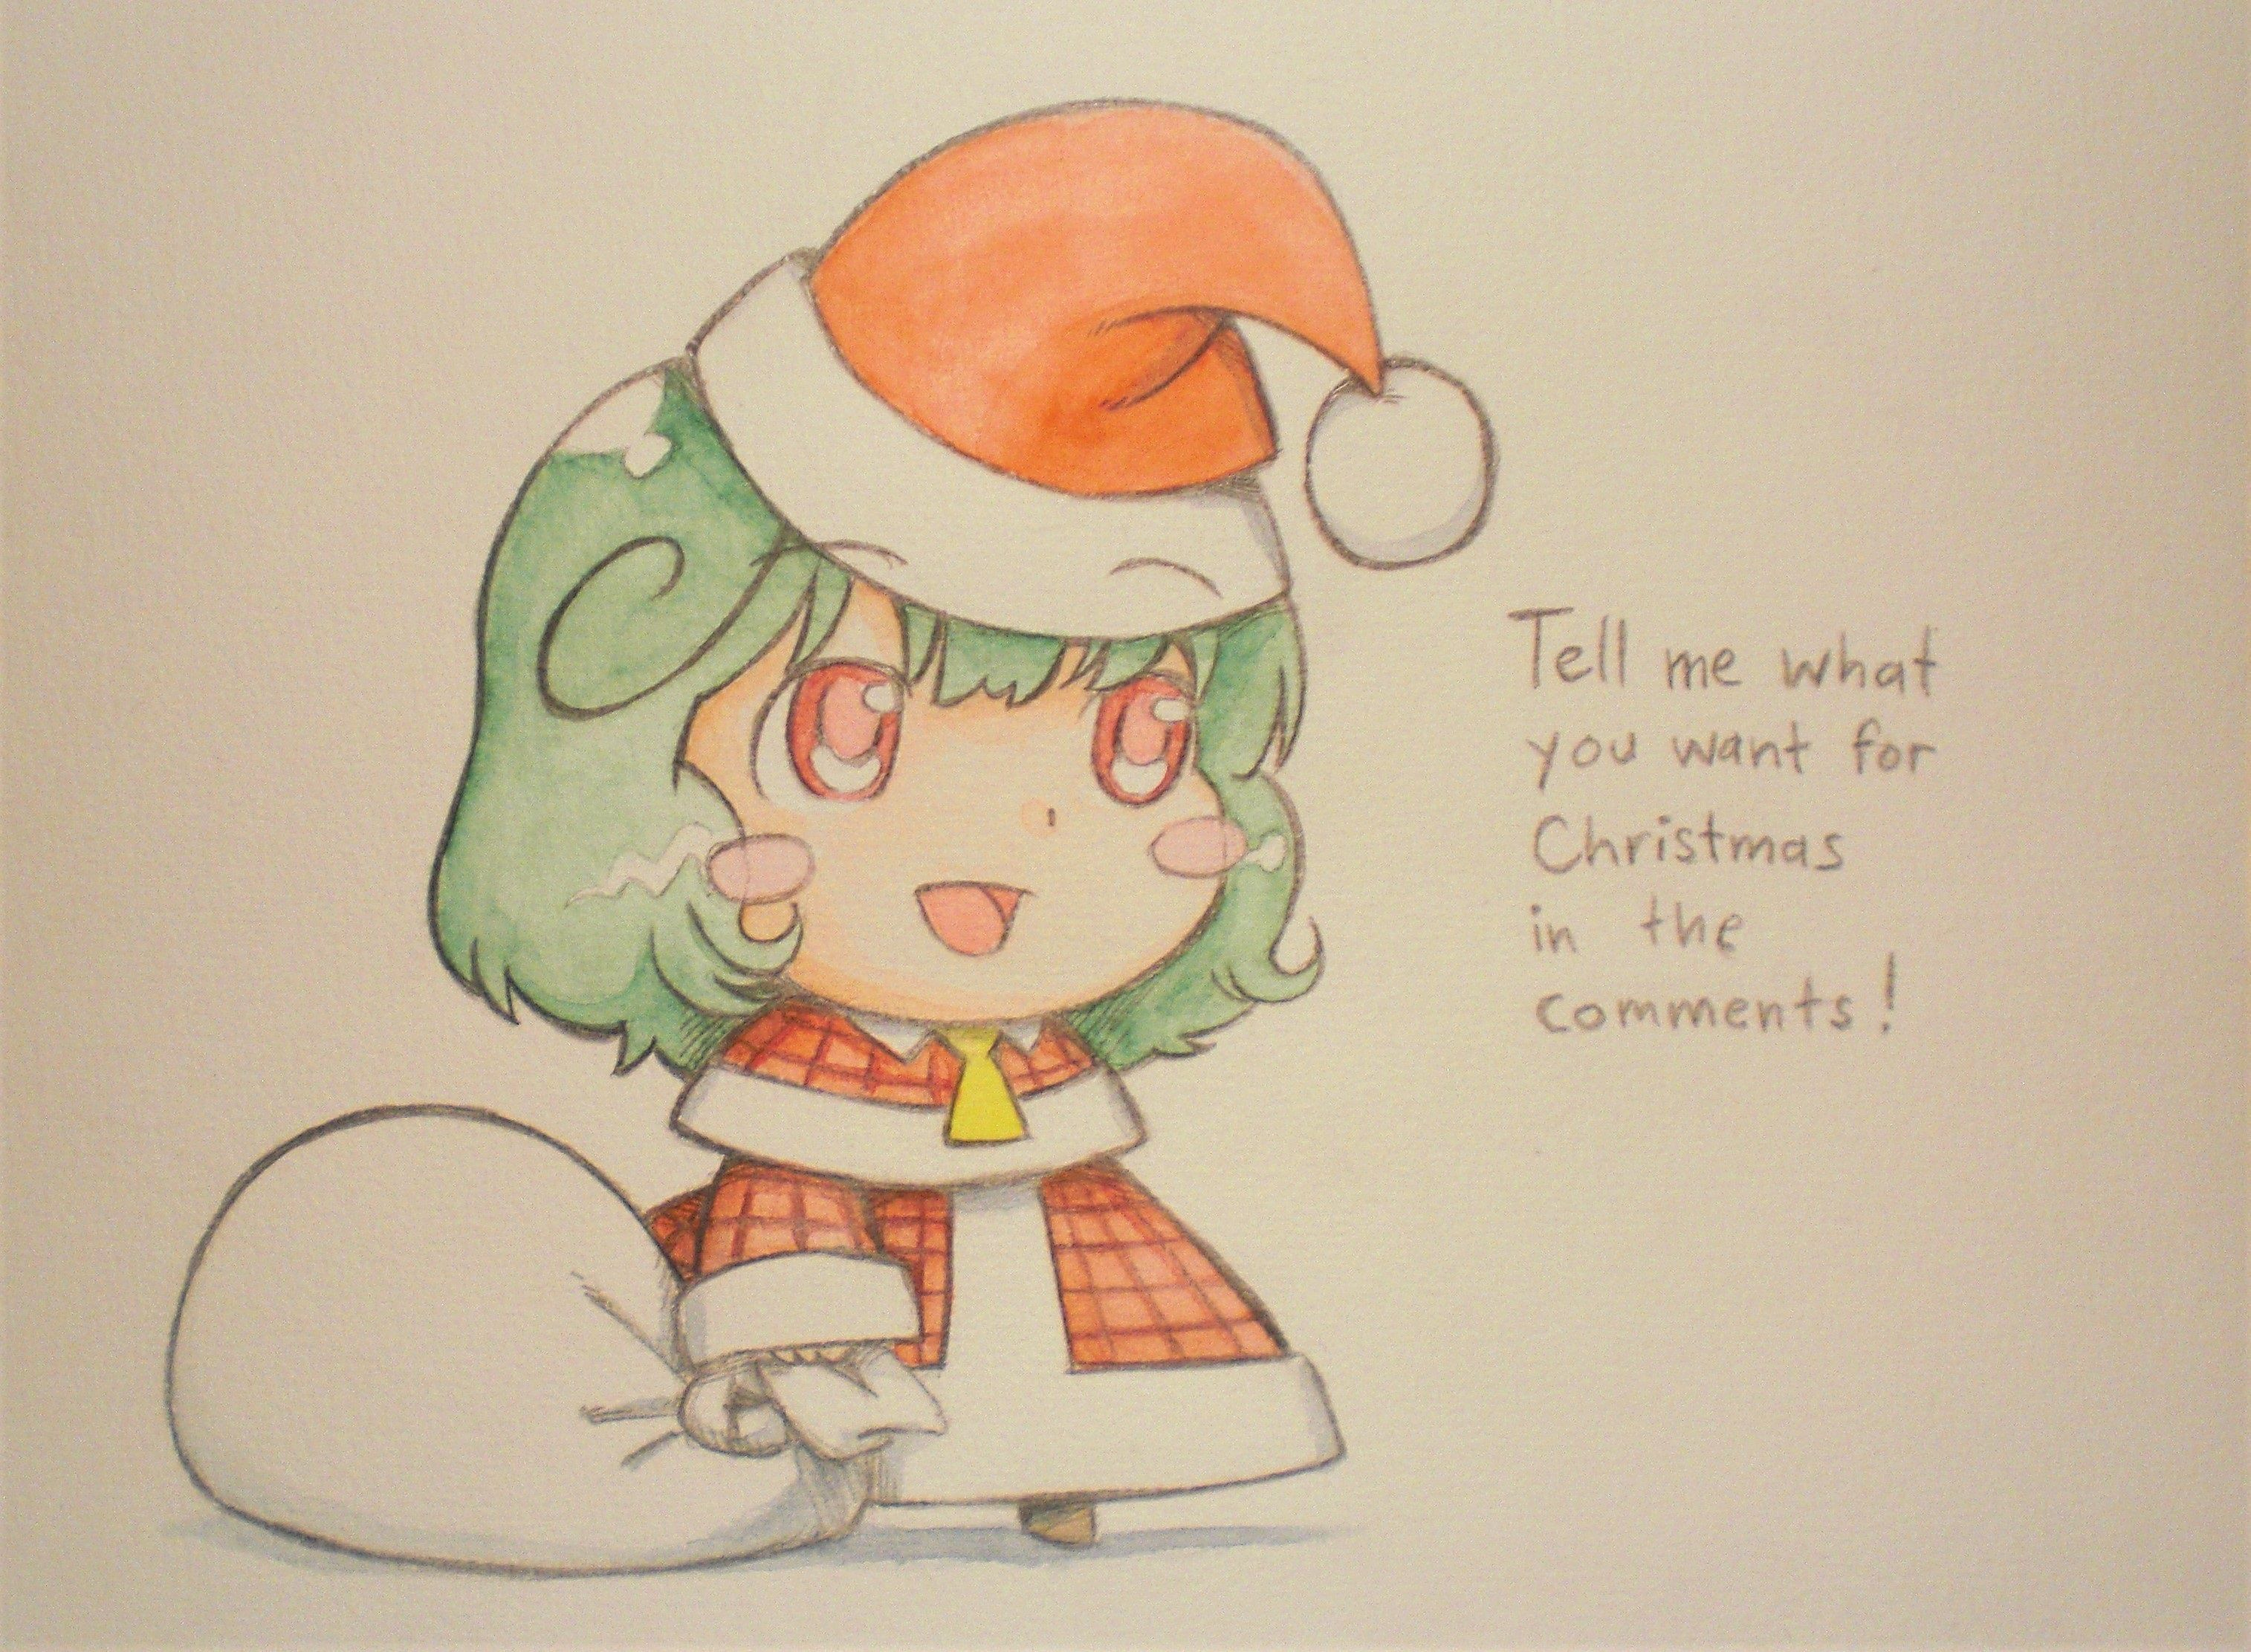 Merry Christmas! For one last time, I will answer all of your Christmas wishes!